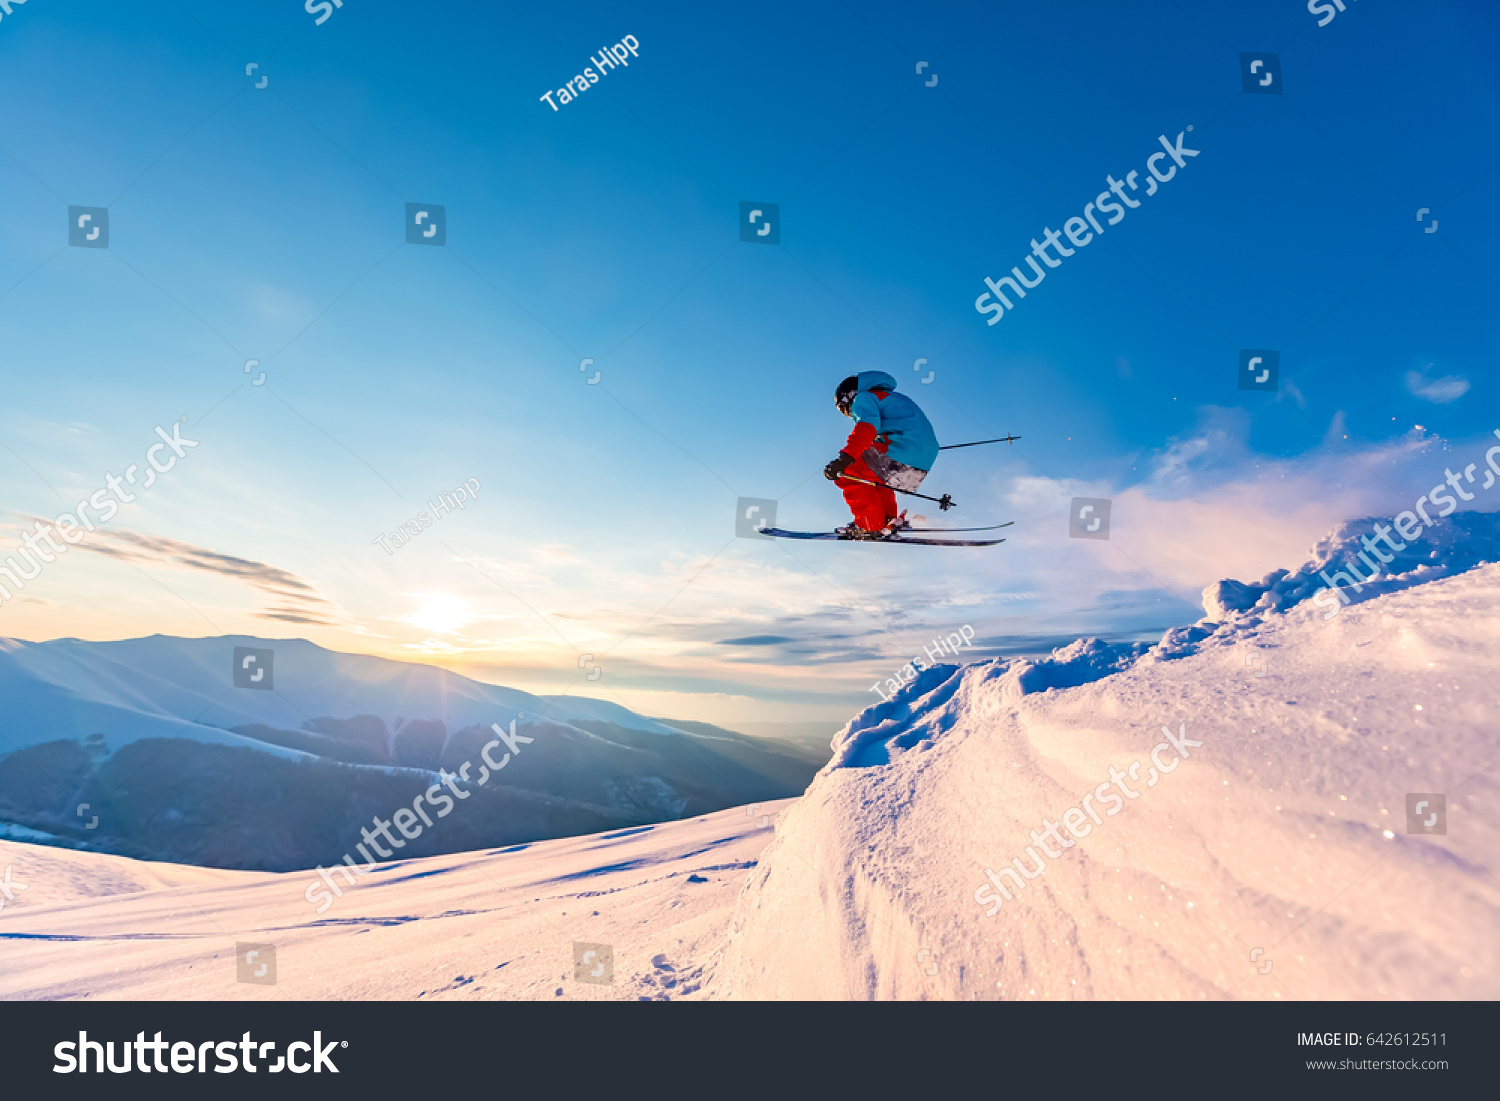 Good skiing in the snowy mountains, Carpathians, Ukraine. Beautiful winter sunset, incredible ski jump. #642612511